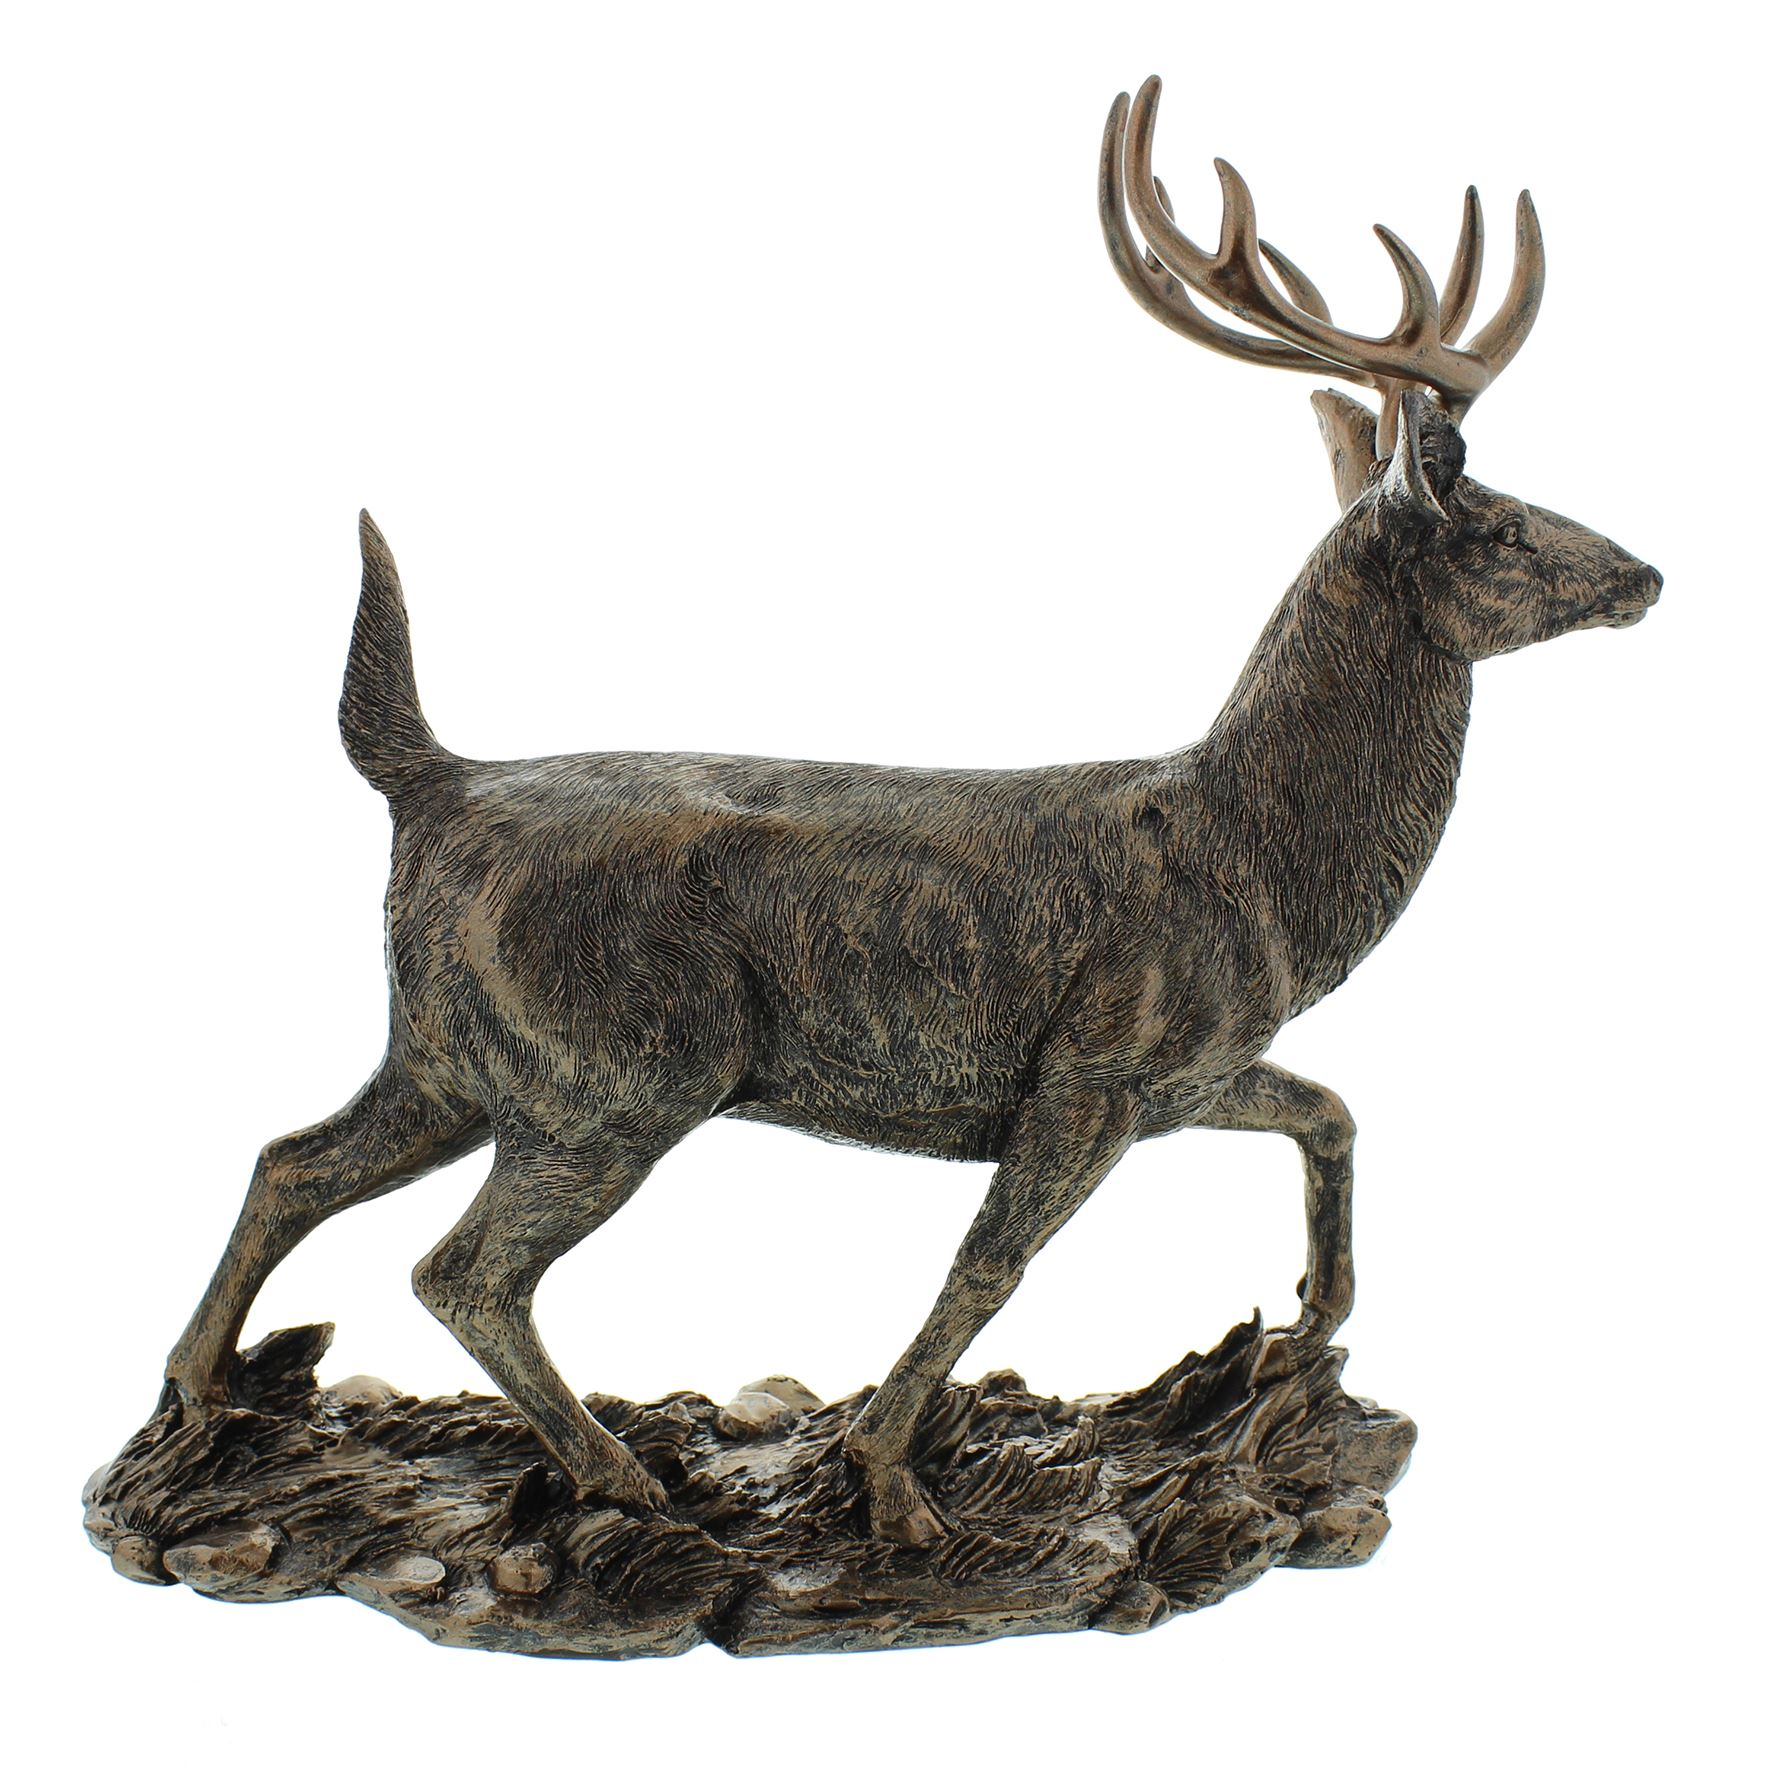 Leonardo Bronzed Reflections STAG /& DEER Resin Ornament New Boxed Gift LP43368